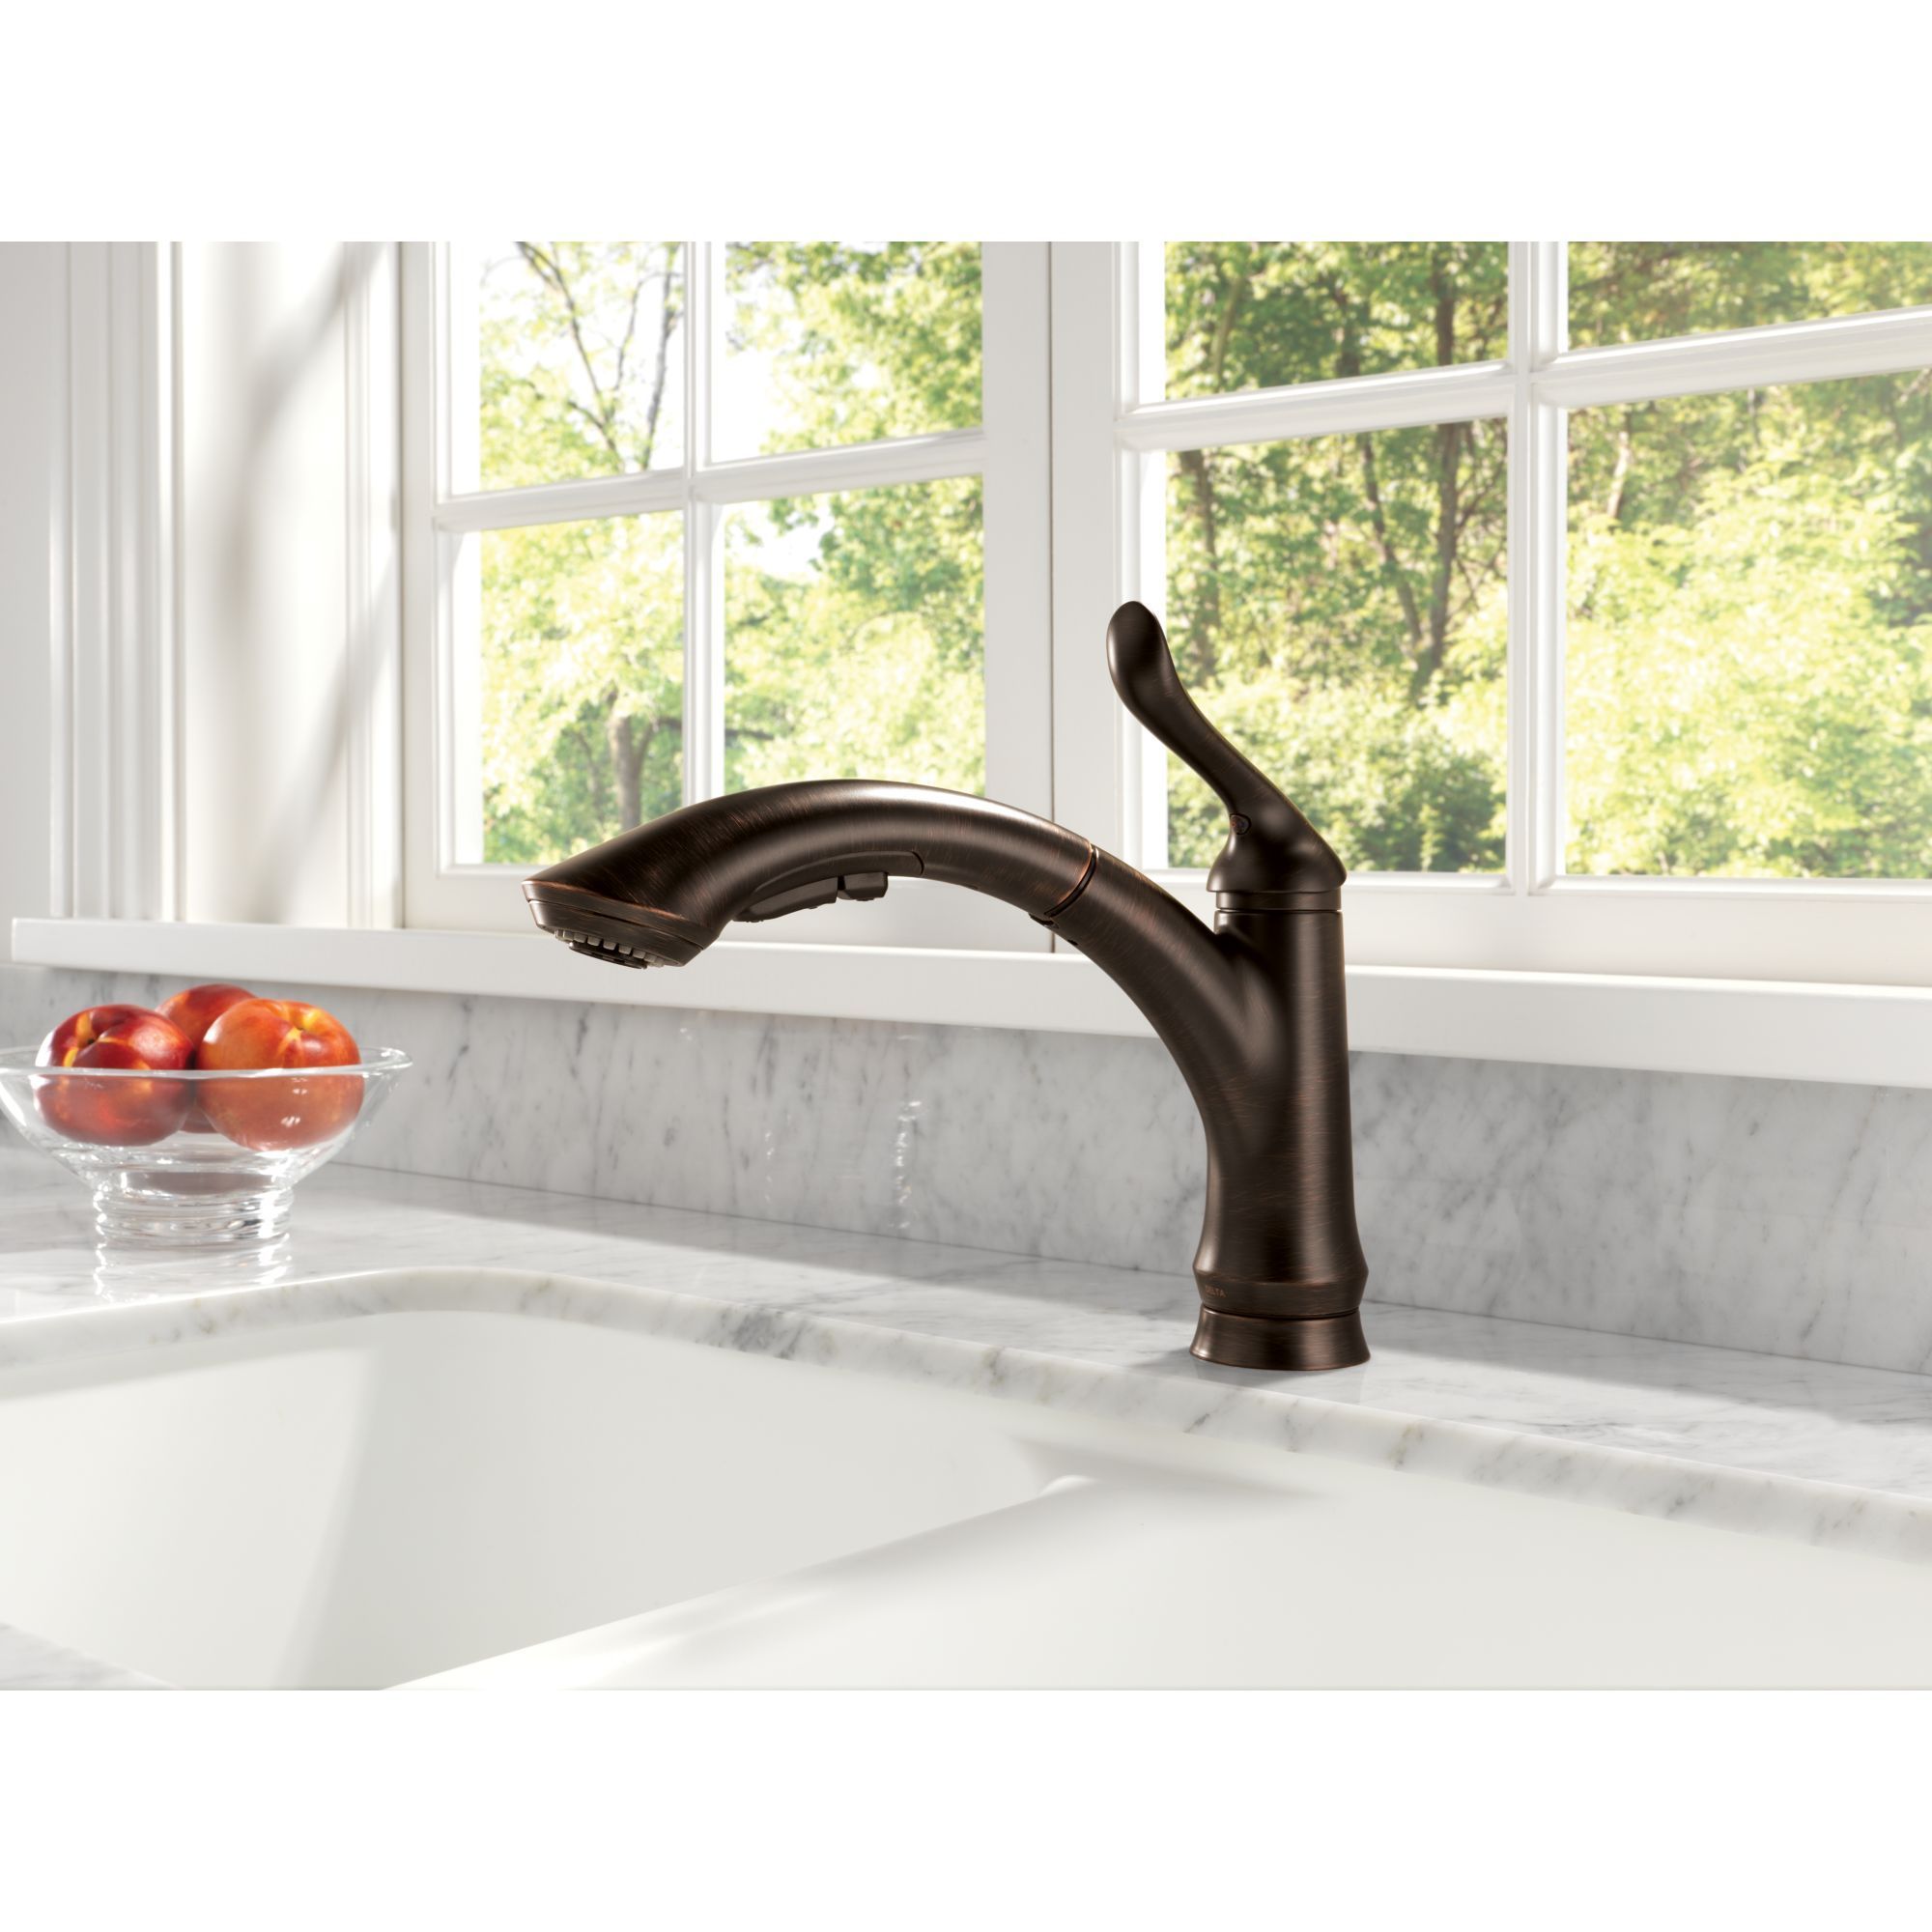 kitchen diamond single linden faucet pull delta lovely with technology sprayer seal simple down define touch handle design interior chrome